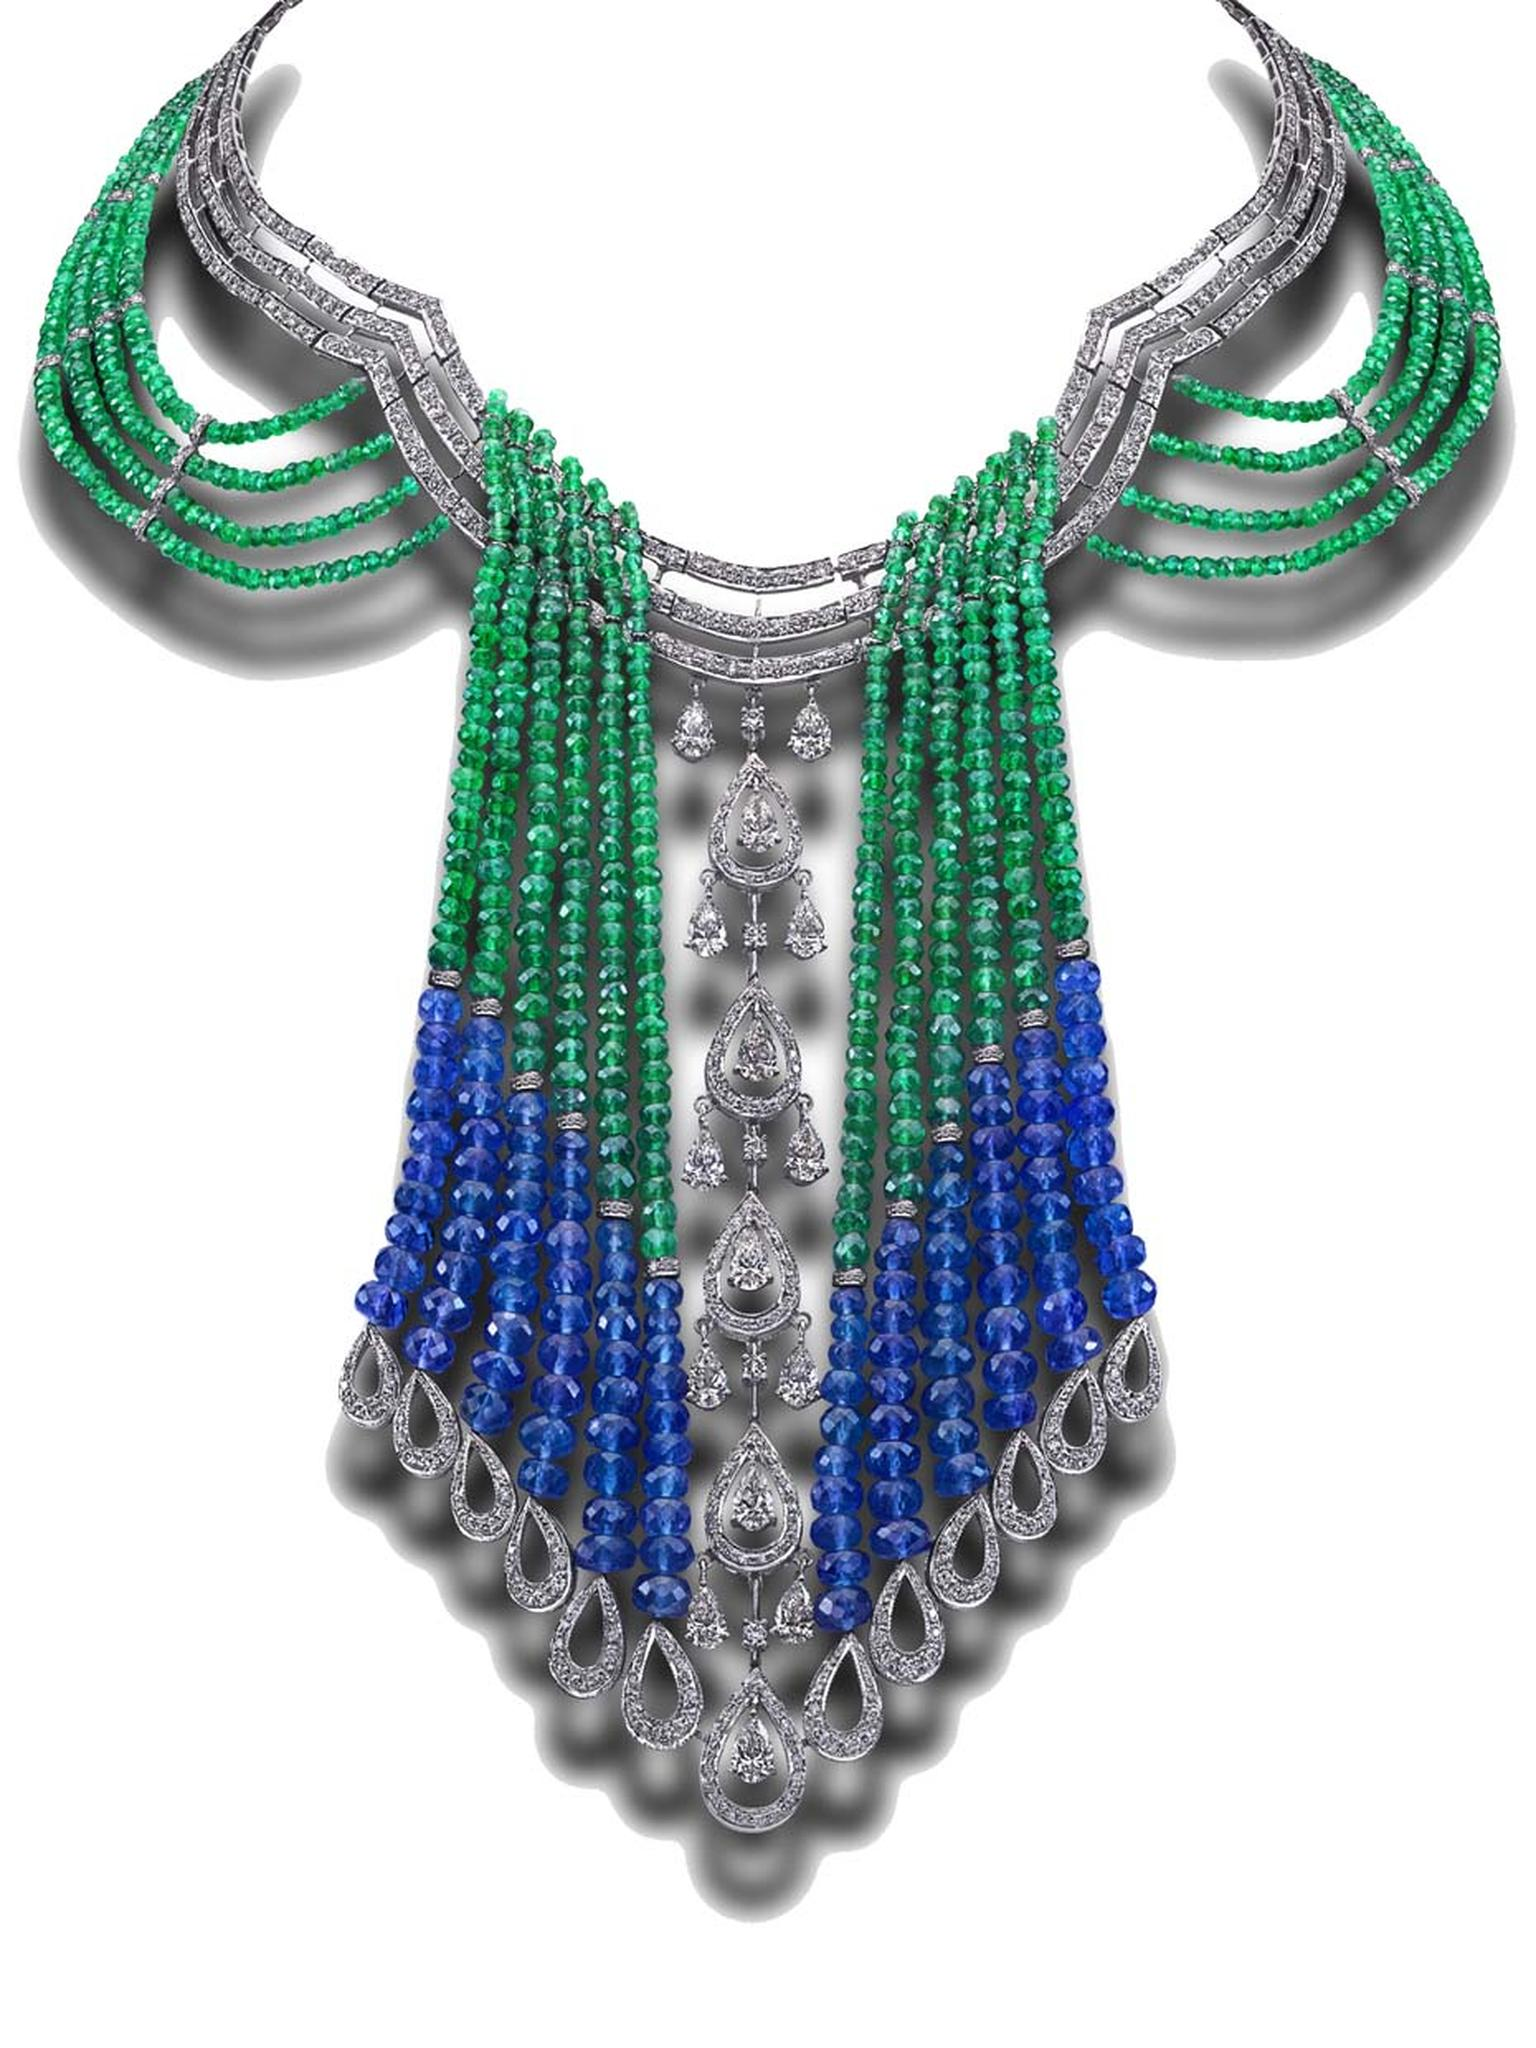 House of Rose emerald and tanzanite necklace with pear-shaped diamonds.